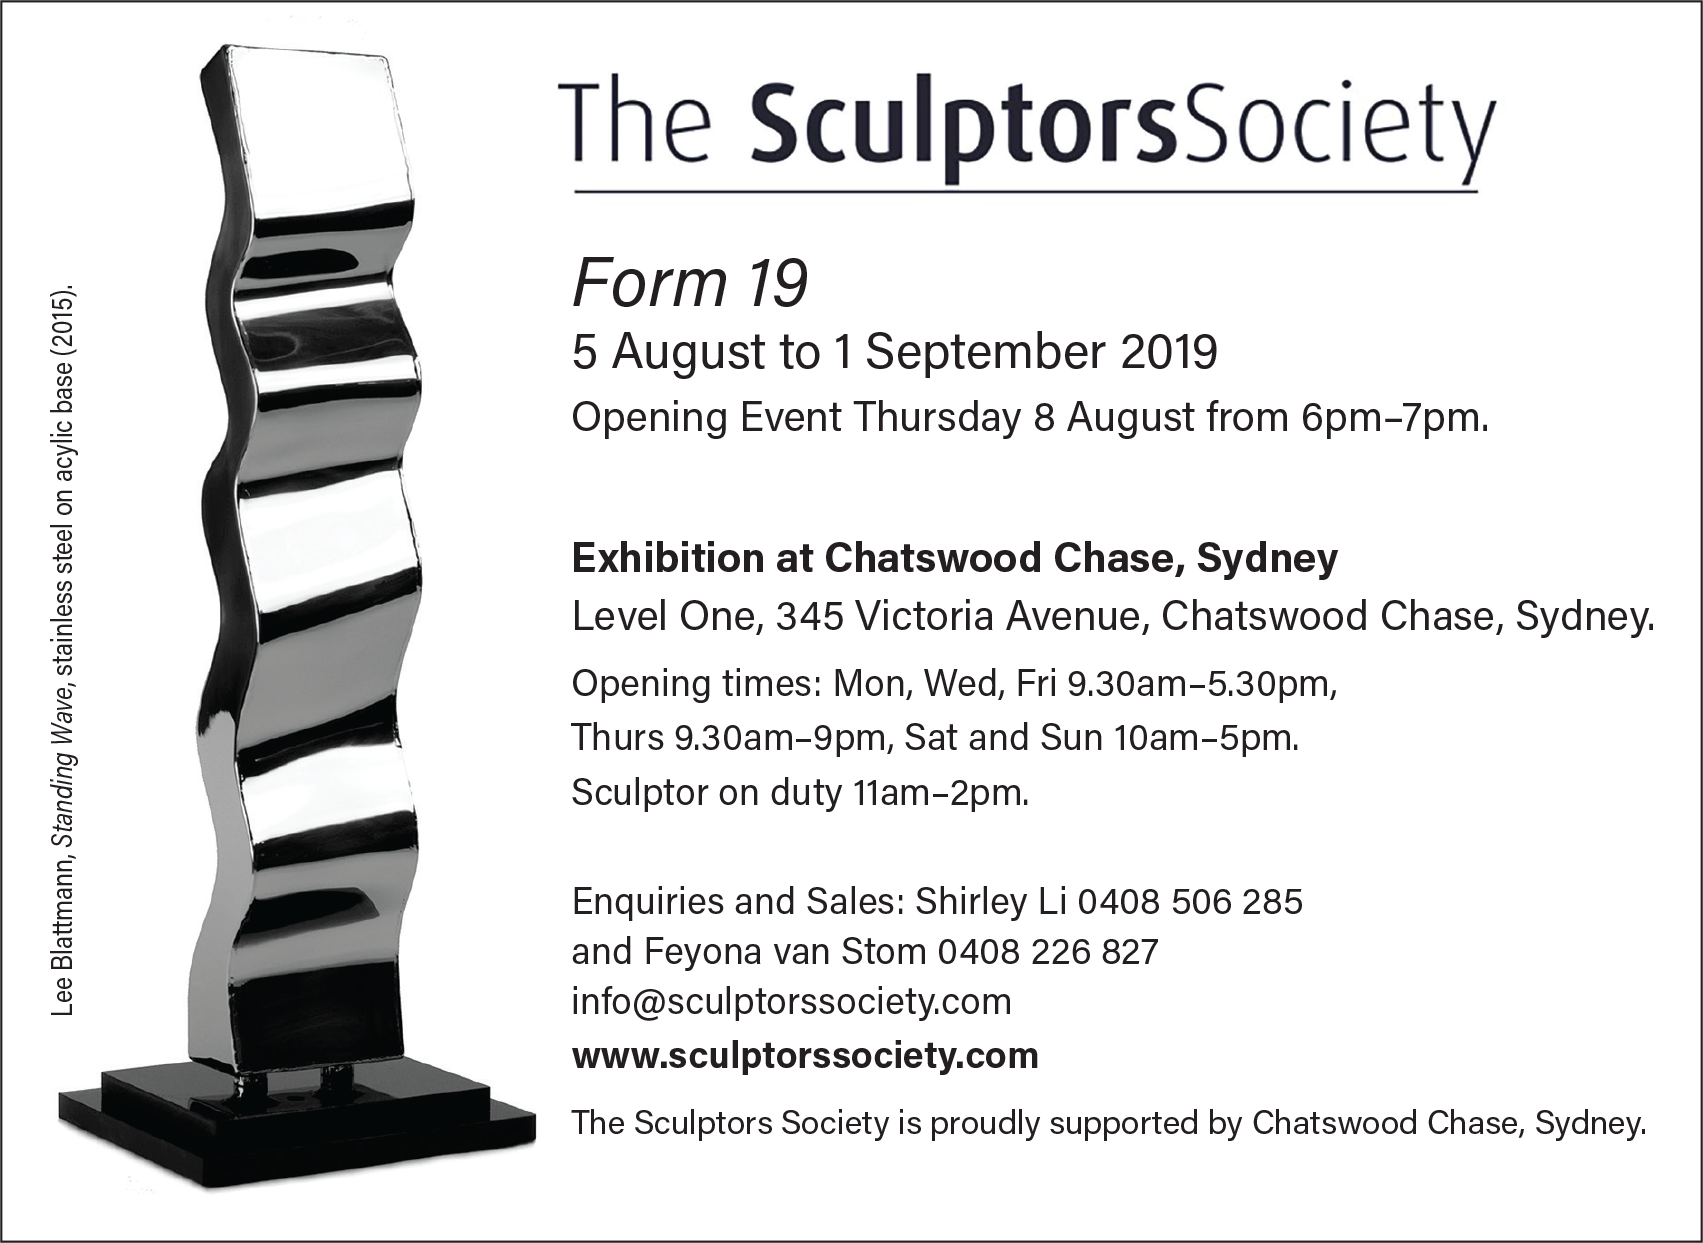 Sculptors Society Chatswood Chase Invitation